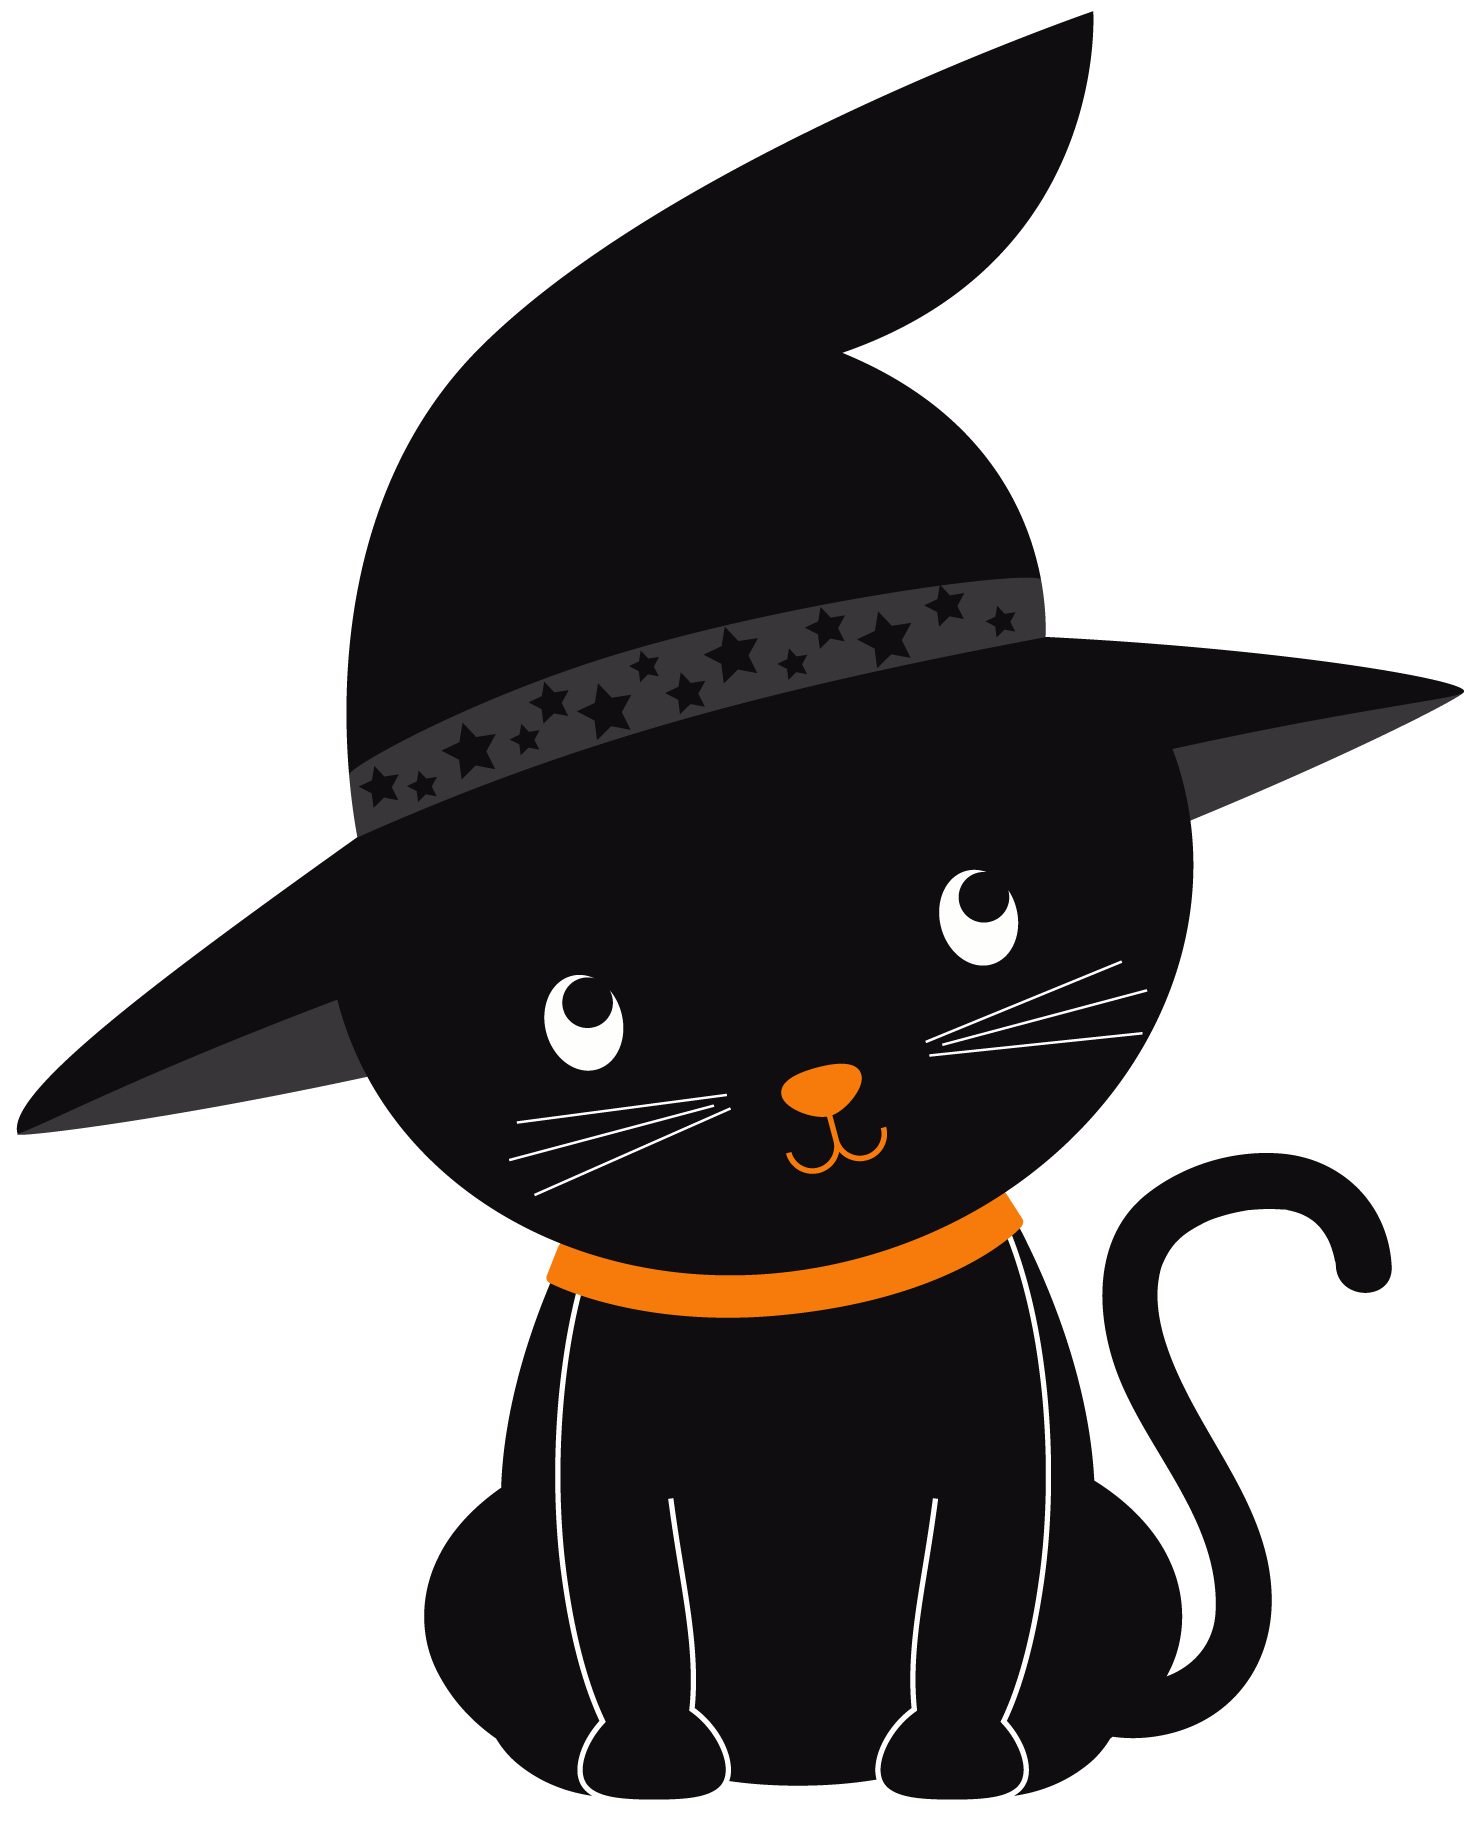 Halloween cat png. Black image background arts